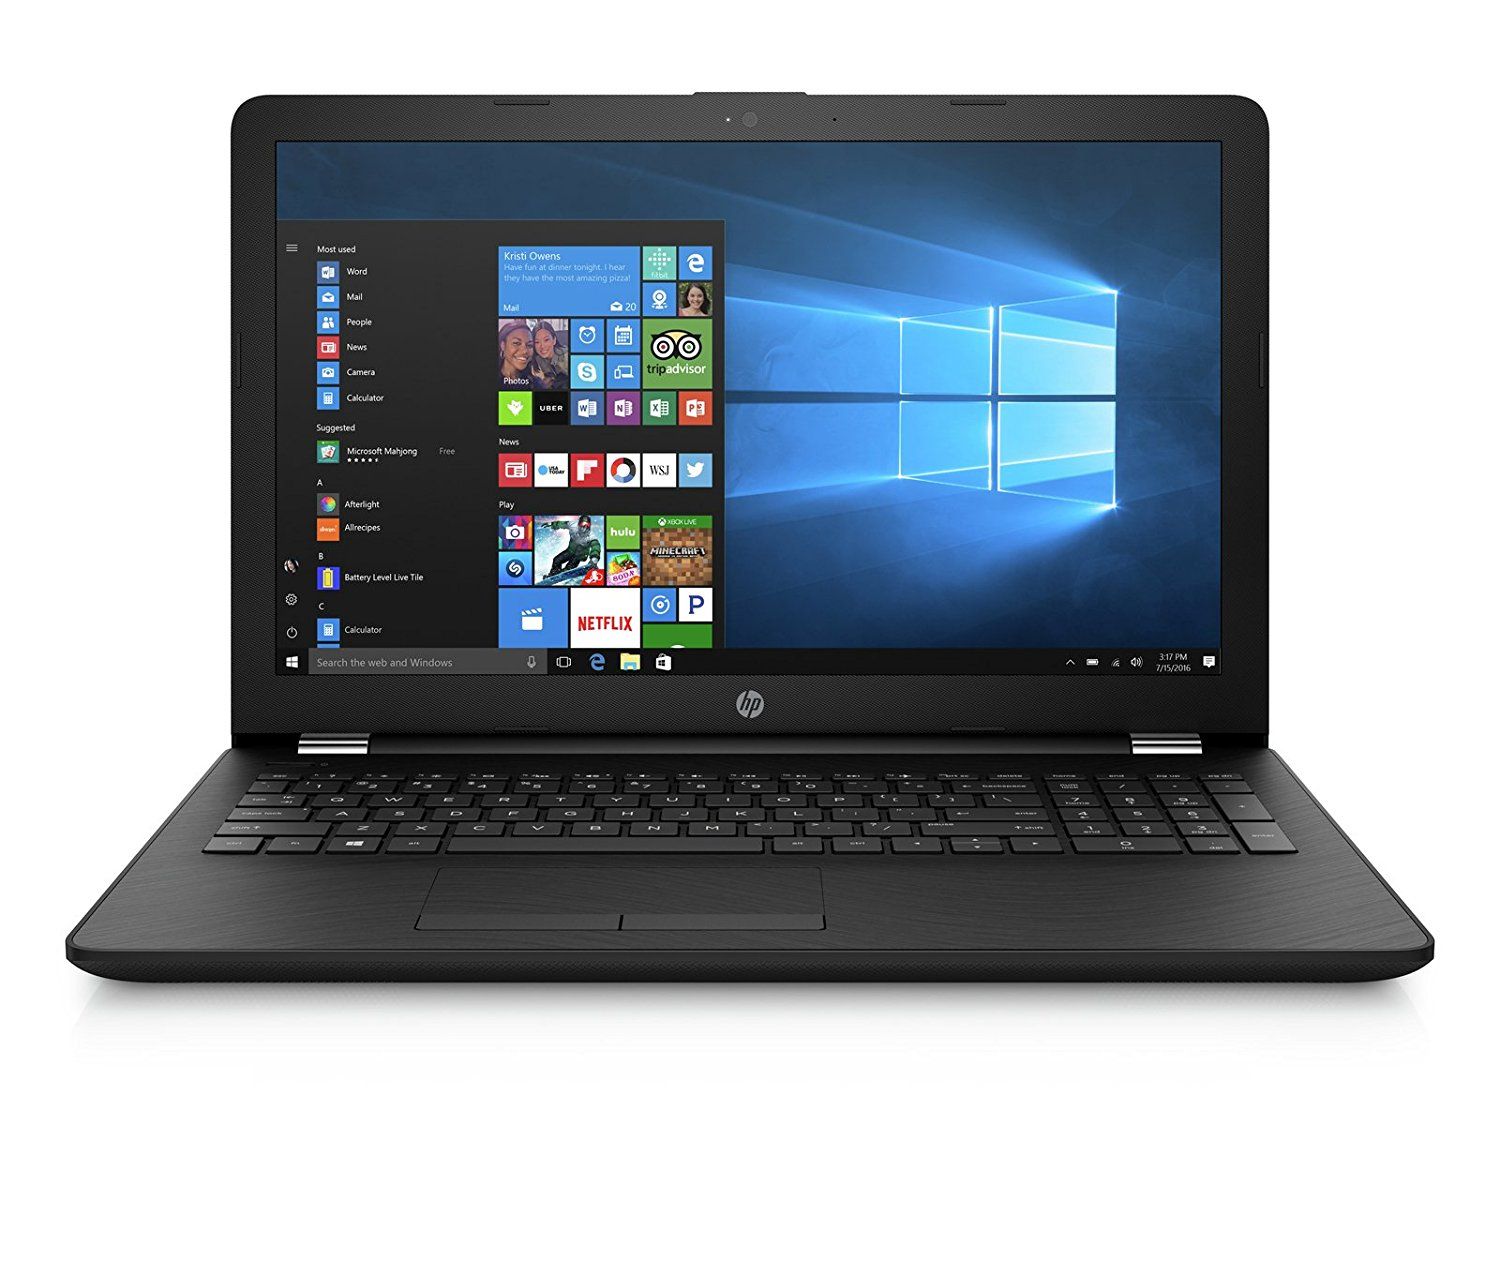 HP 15-BS661TX Portable FHD 15.6 Inch Laptop (6th Gen Intel Core i3 Processor i3-6006U/8GB/1TB/Windows 10 Home 64-bit/Microsoft Office Home & Student 2016/AMD Radeon 520 Dedicated Graphics) with Anti Glare and Fast Charge